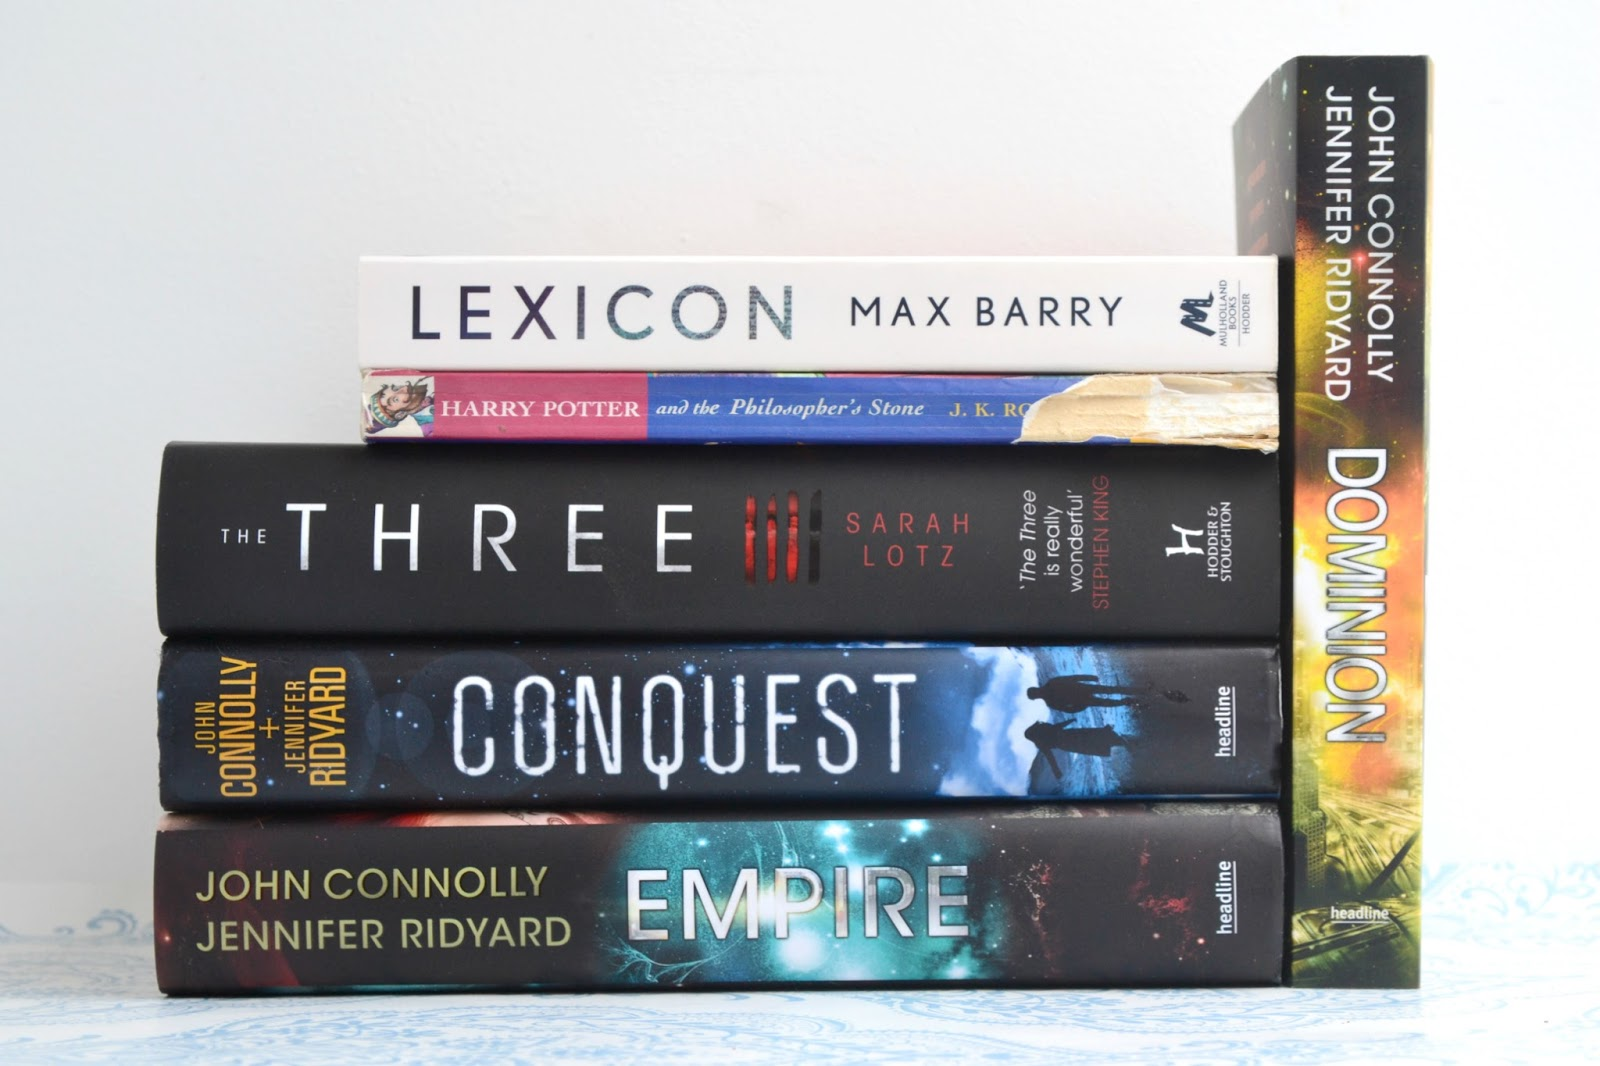 Lexicon by Max Barry, Harry Potter and the Philosopher's Stone by JK Rowling, The Three by Sarah Lotz and Conquest, Empire and Dominion by Jennifer Ridyard and John Connolly.